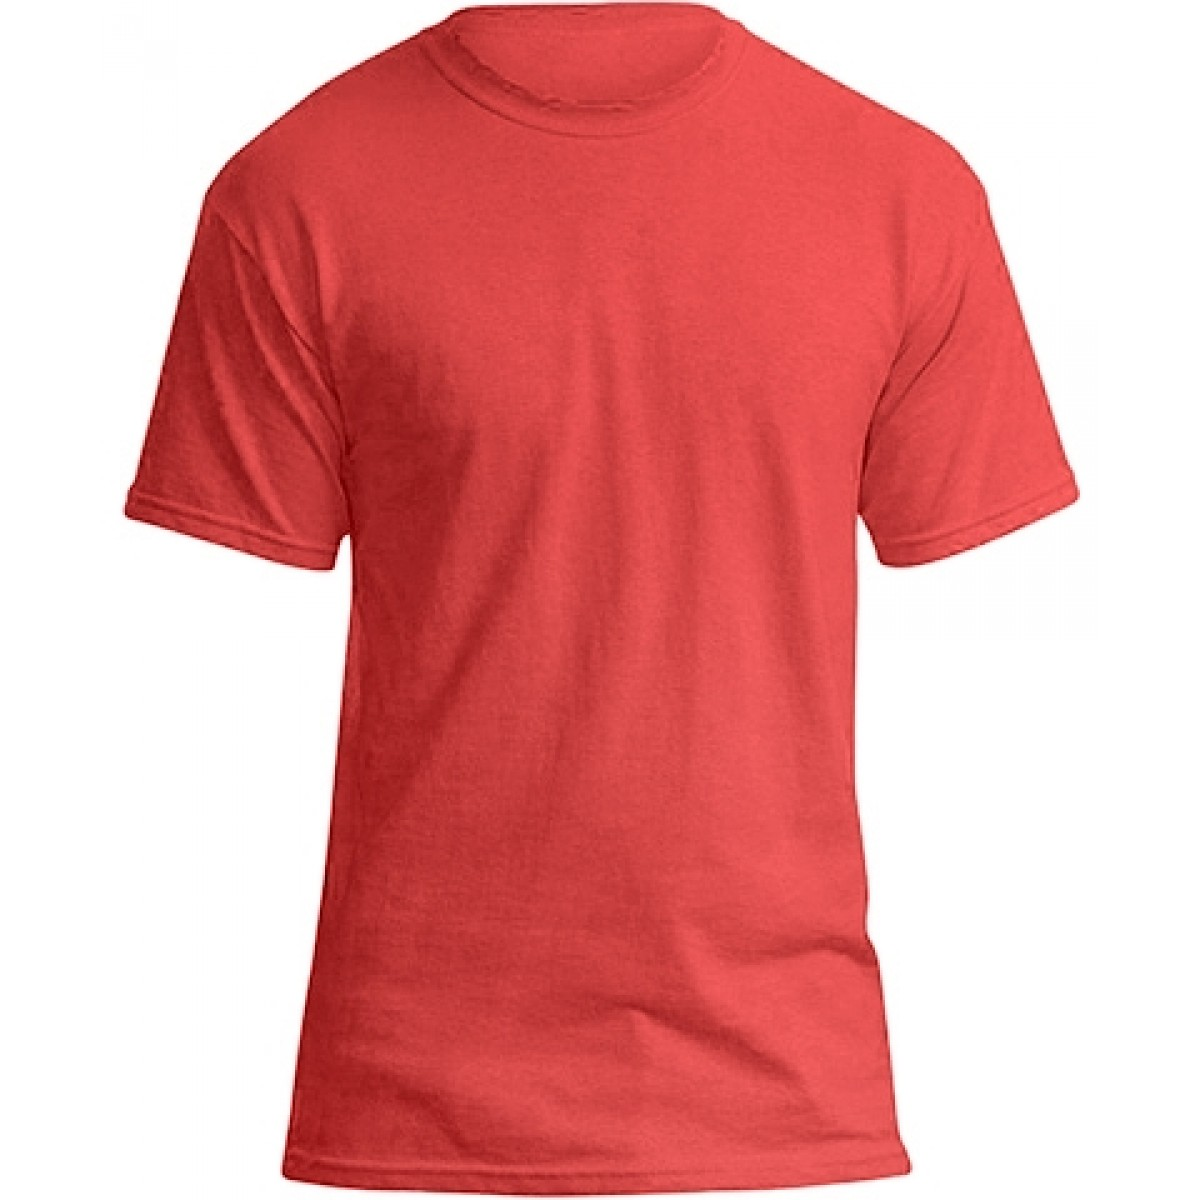 Soft 100% Cotton T-Shirt-Heather Red-M